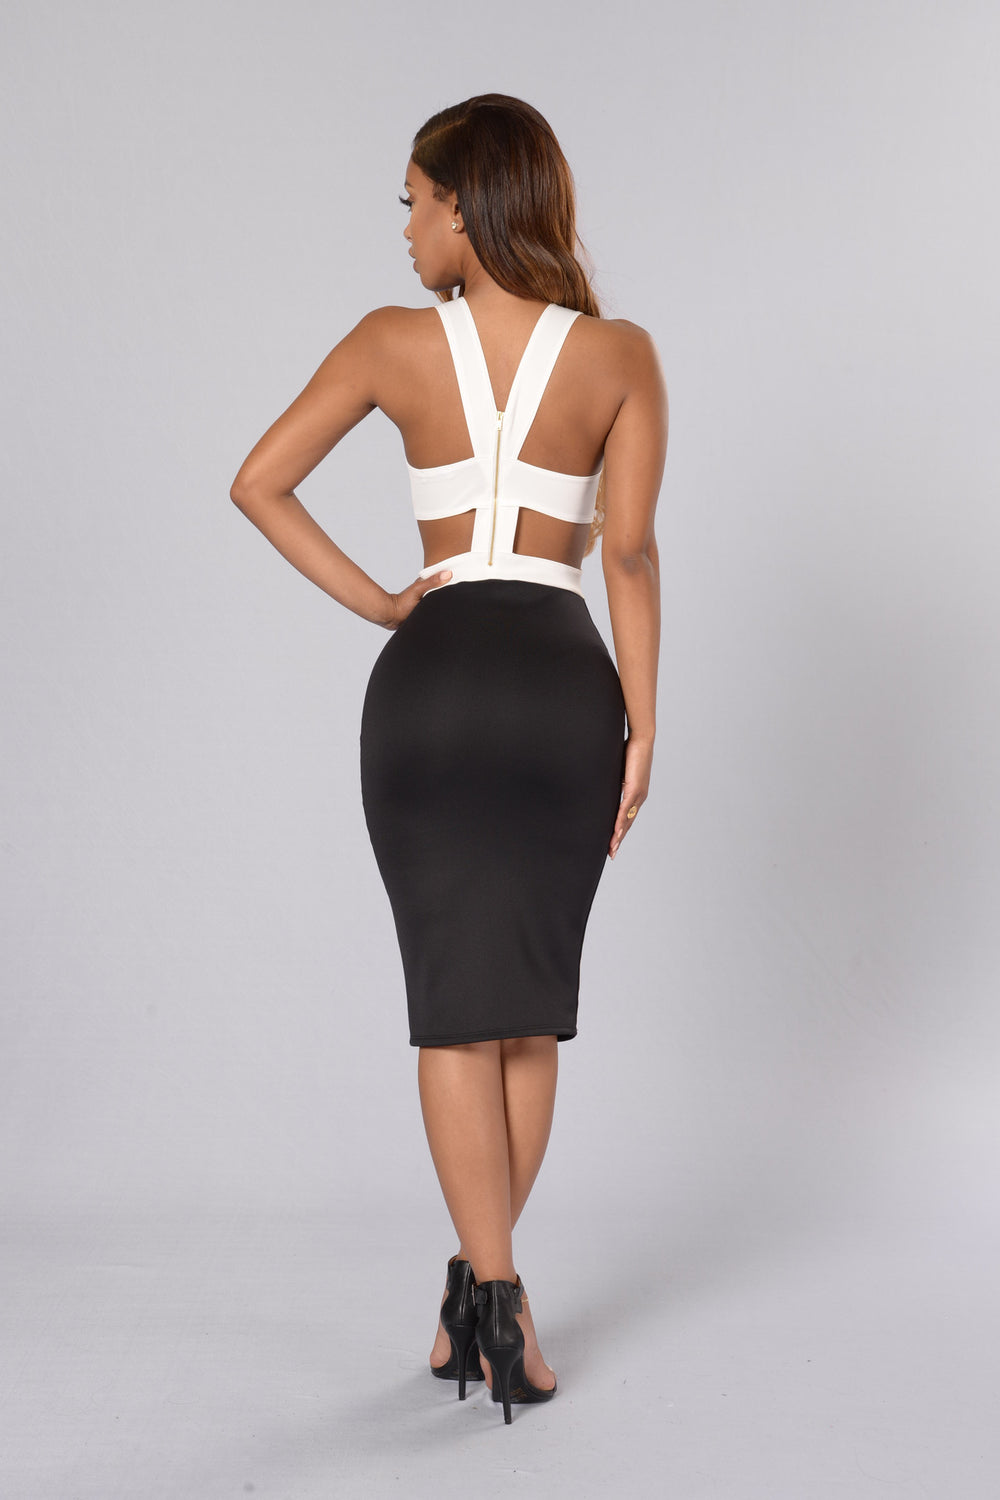 Jackpot Dress - Black/White